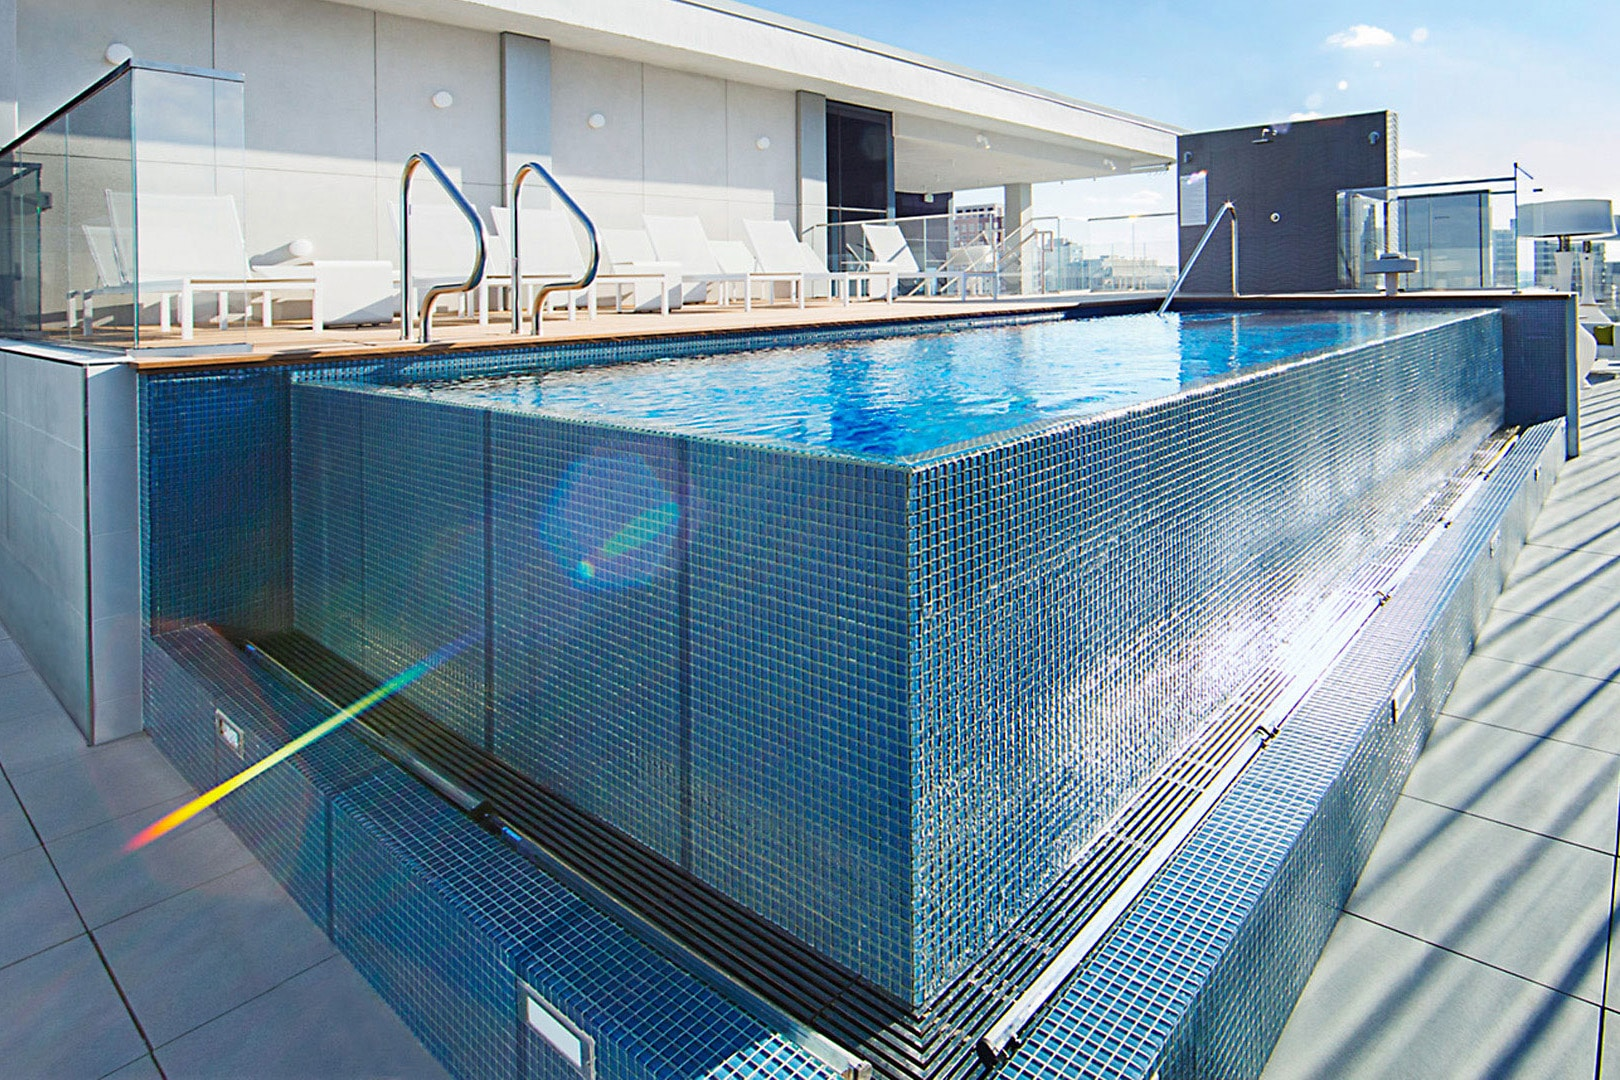 stainless steel pools bradford products gbd magazine gbdpro